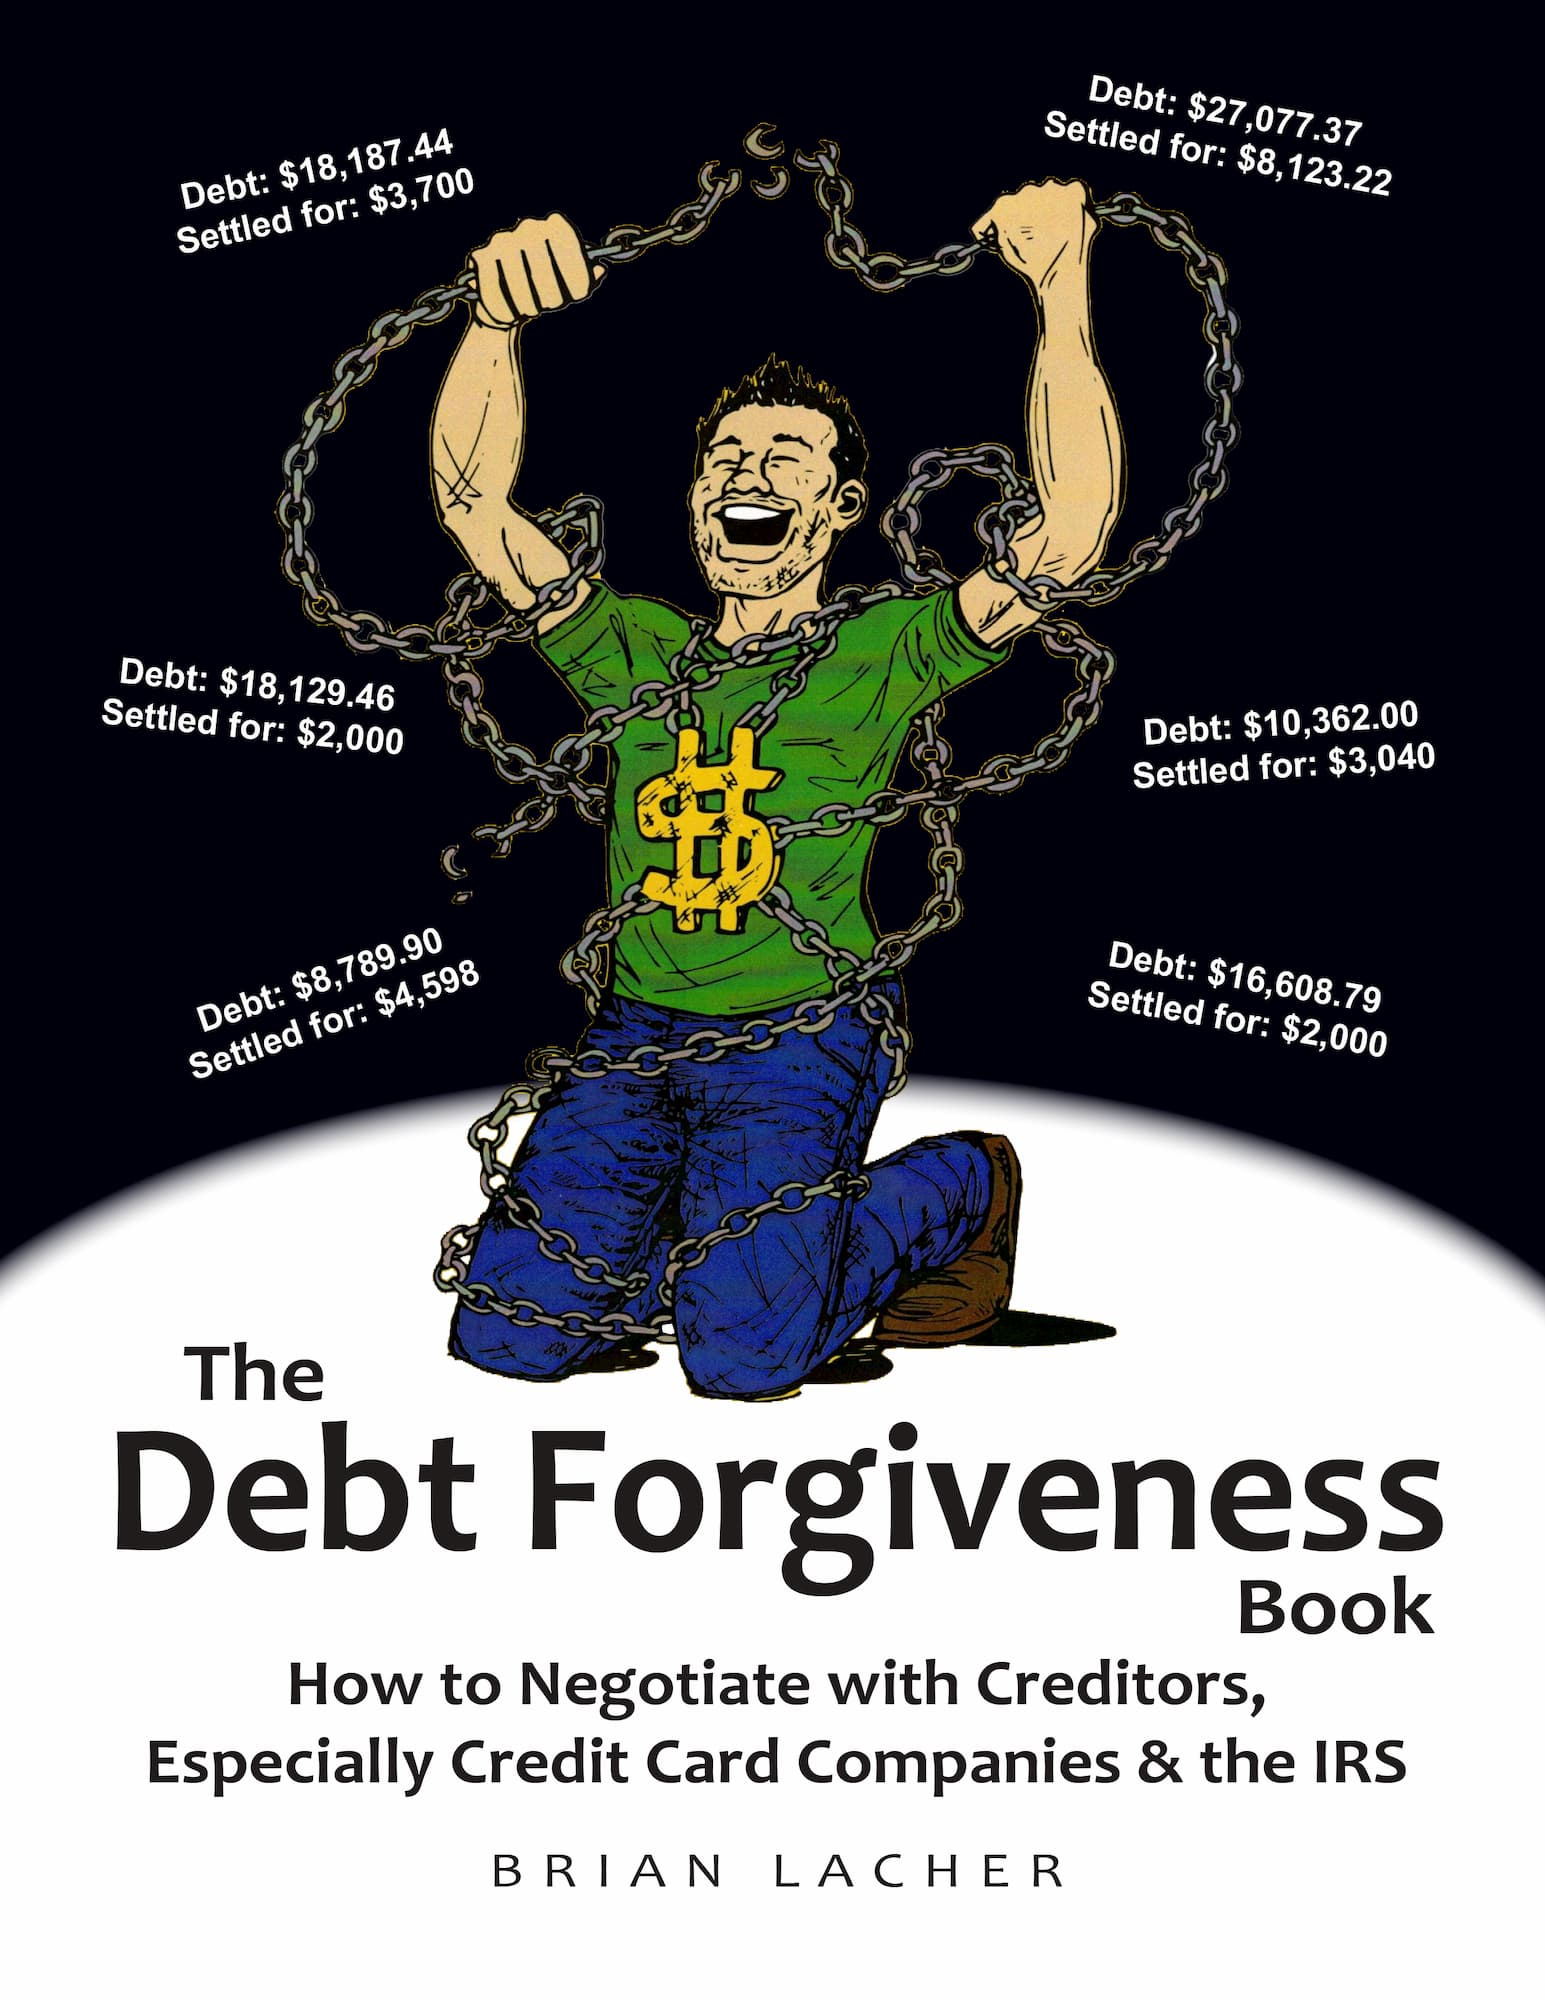 Debt Forgiveness Book by Brian Lacher